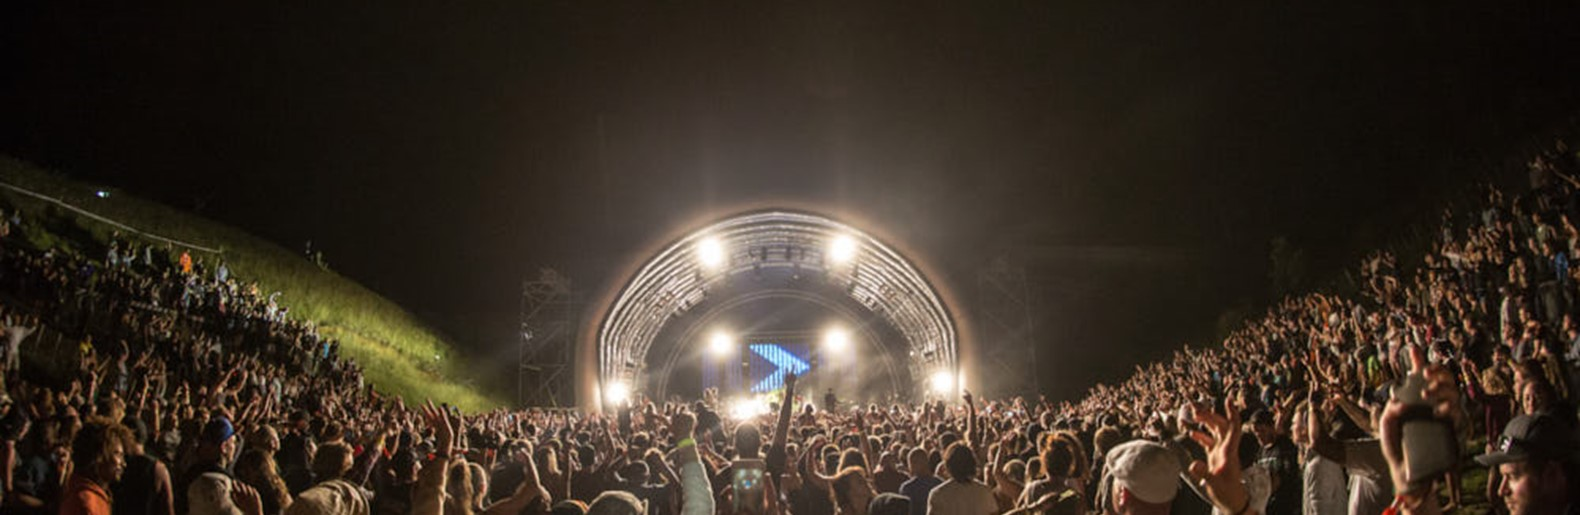 Soundsplash Music Festival NZ